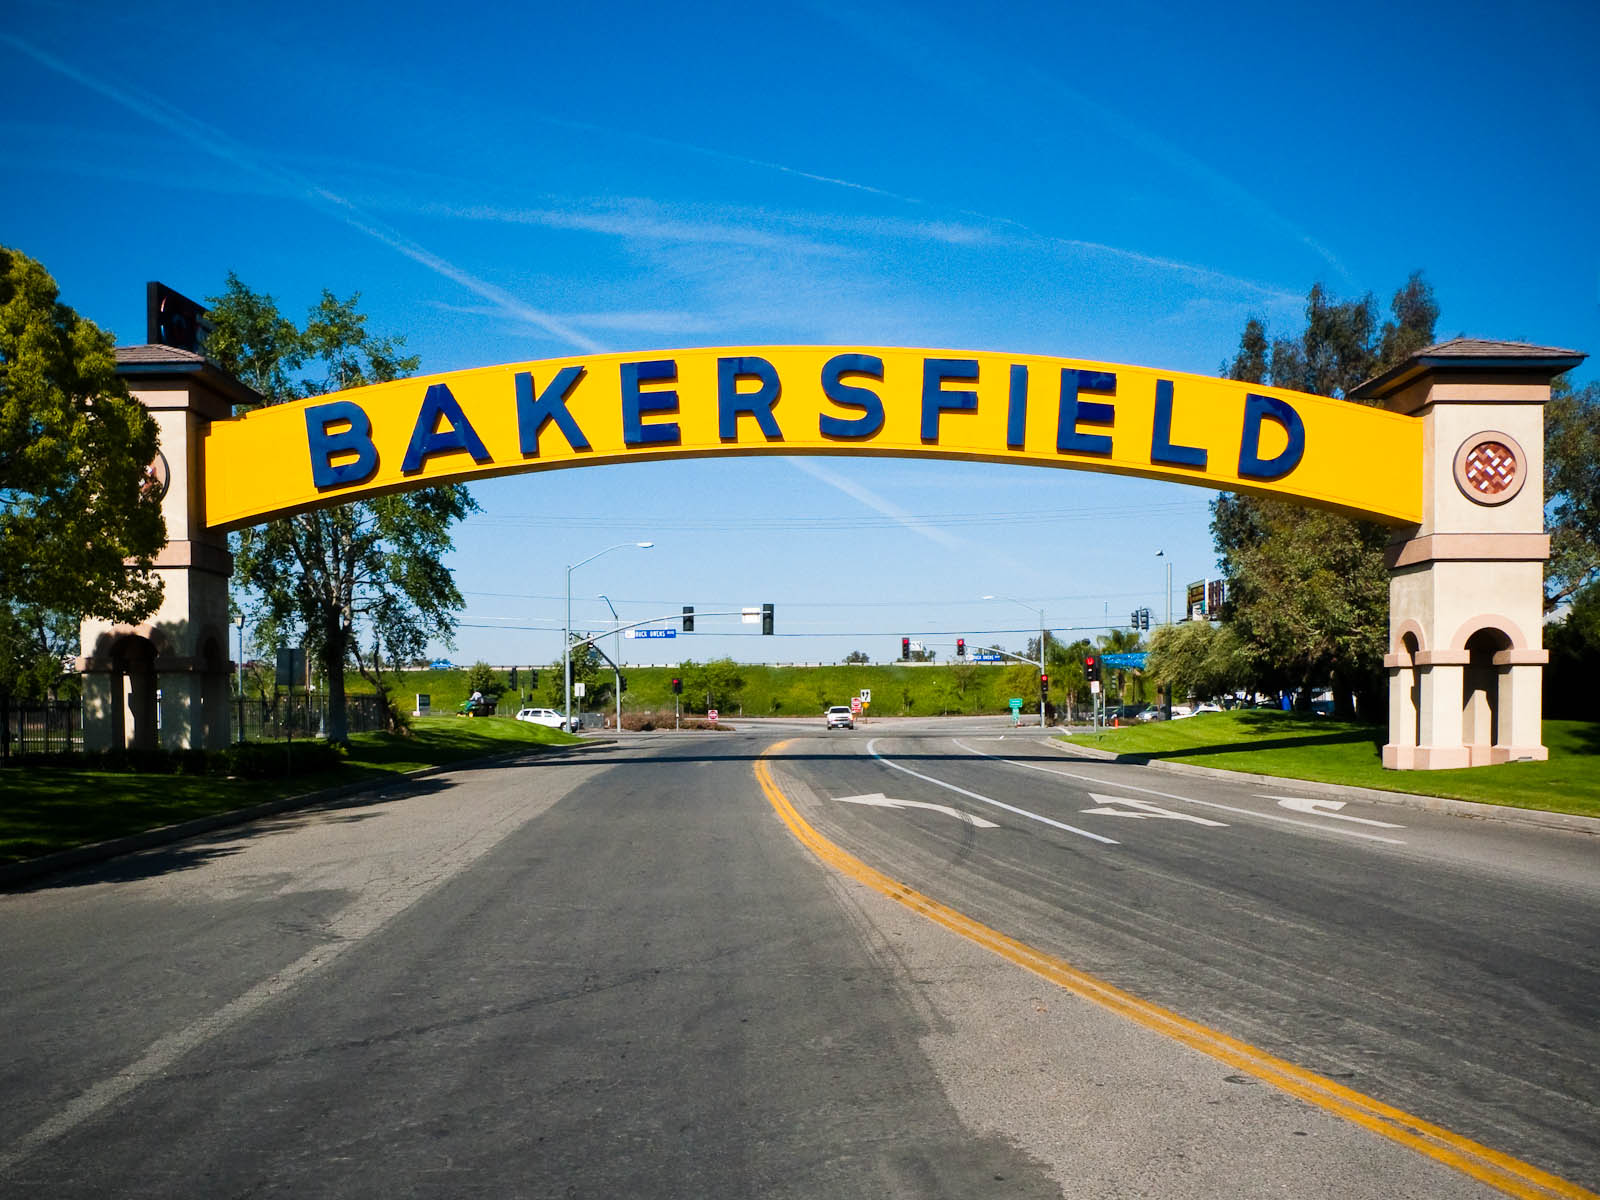 Bakersfield Breaking News THE BAKERSFIELD BREEZE Reports on Breaking News in Bakersfield, California